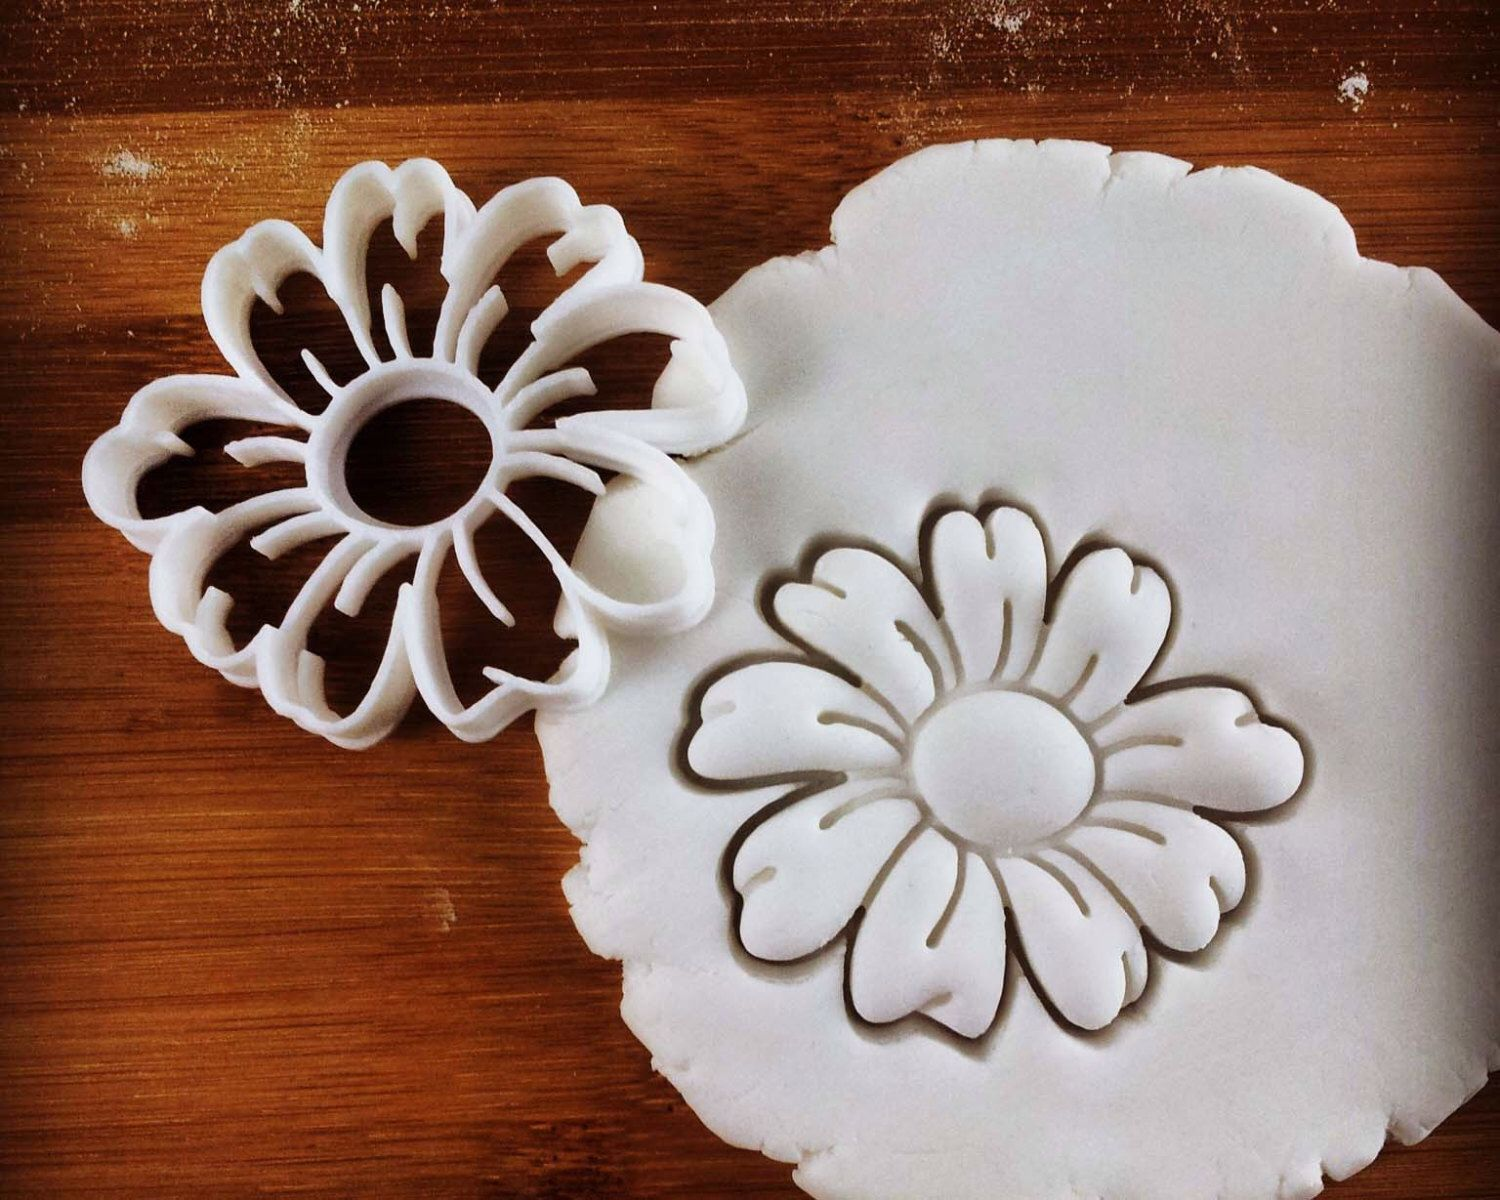 Daisy flower cookie cutter biscuit cutters flowers sunflower daisy flower cookie cutter biscuit cutters flowers sunflower plants bellis perennis asteraceae english daisy one of a kind ooak by made3d on izmirmasajfo